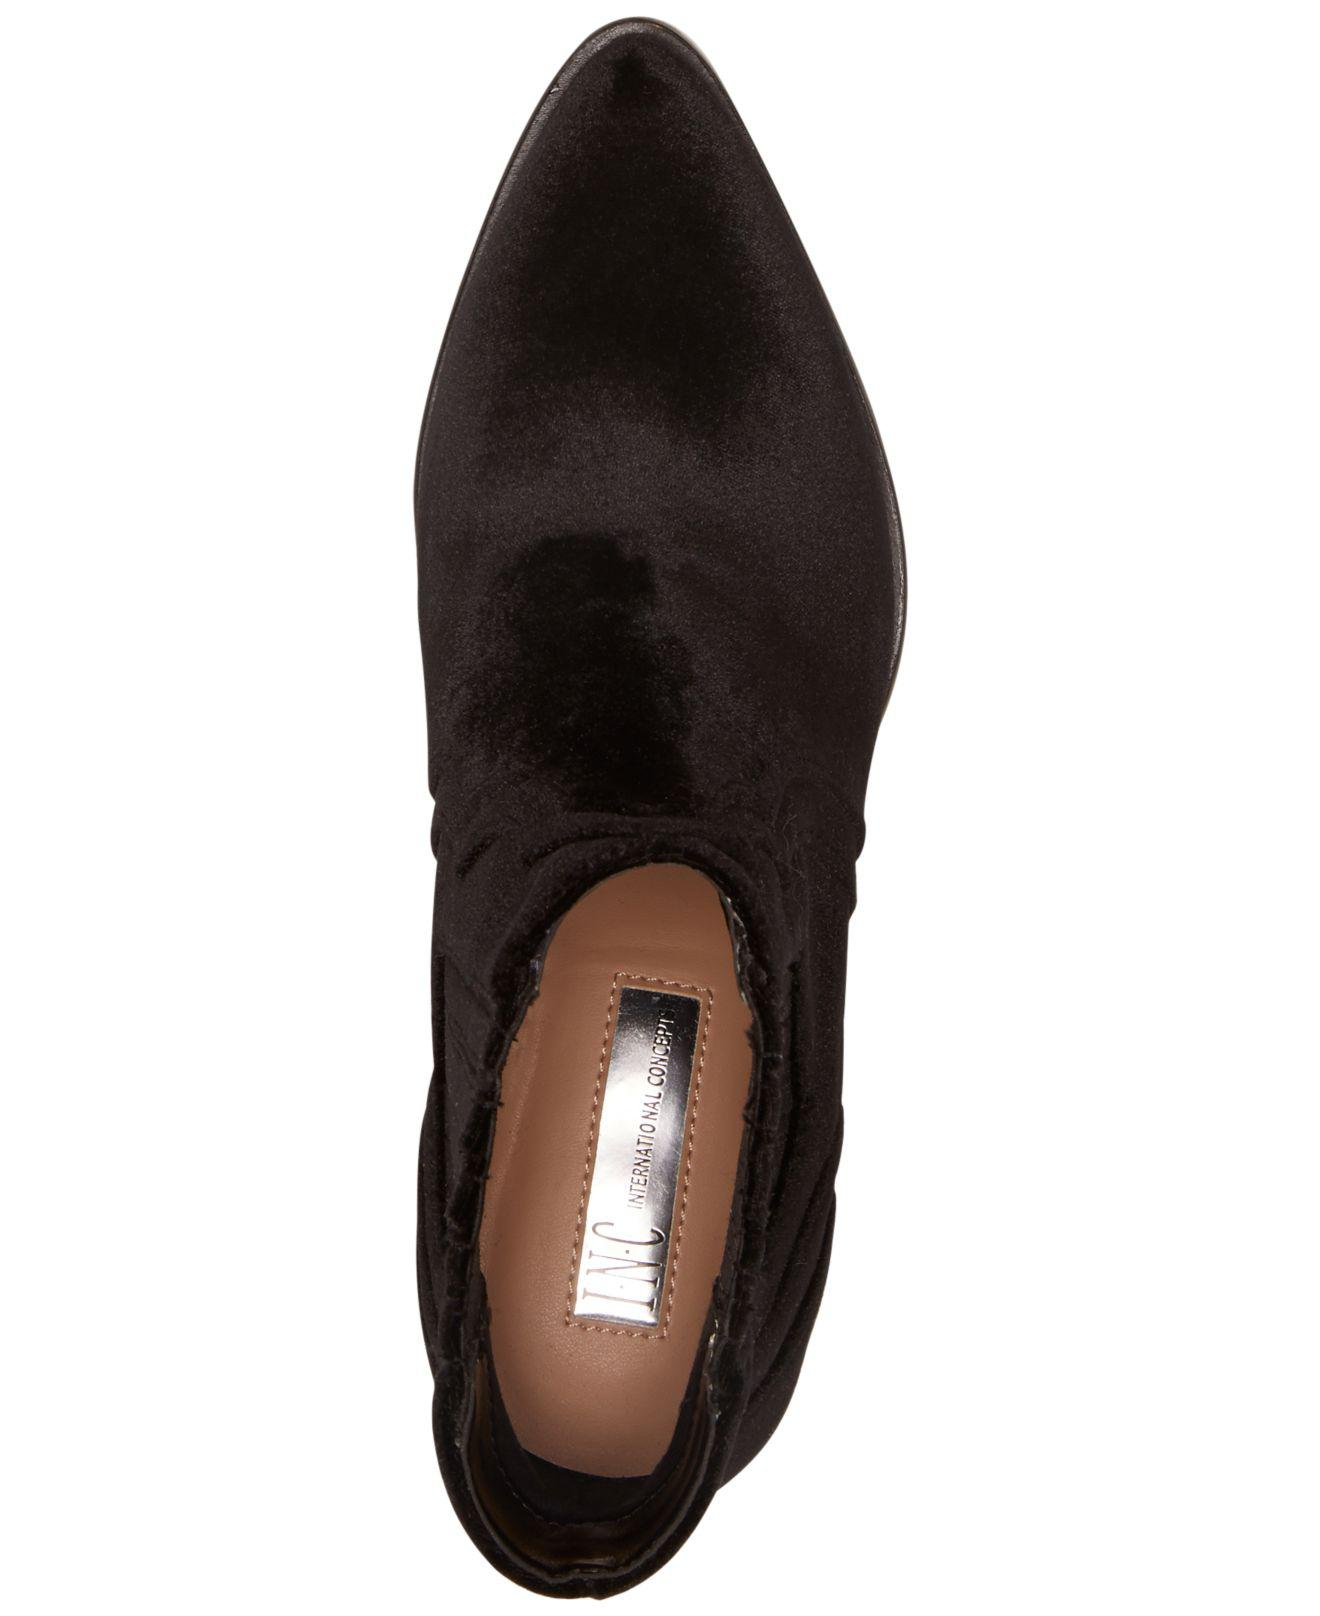 INC Pointed International Concepts Mujer andriaa Pointed INC Toe Ankle Chelsea Botas 050e0f